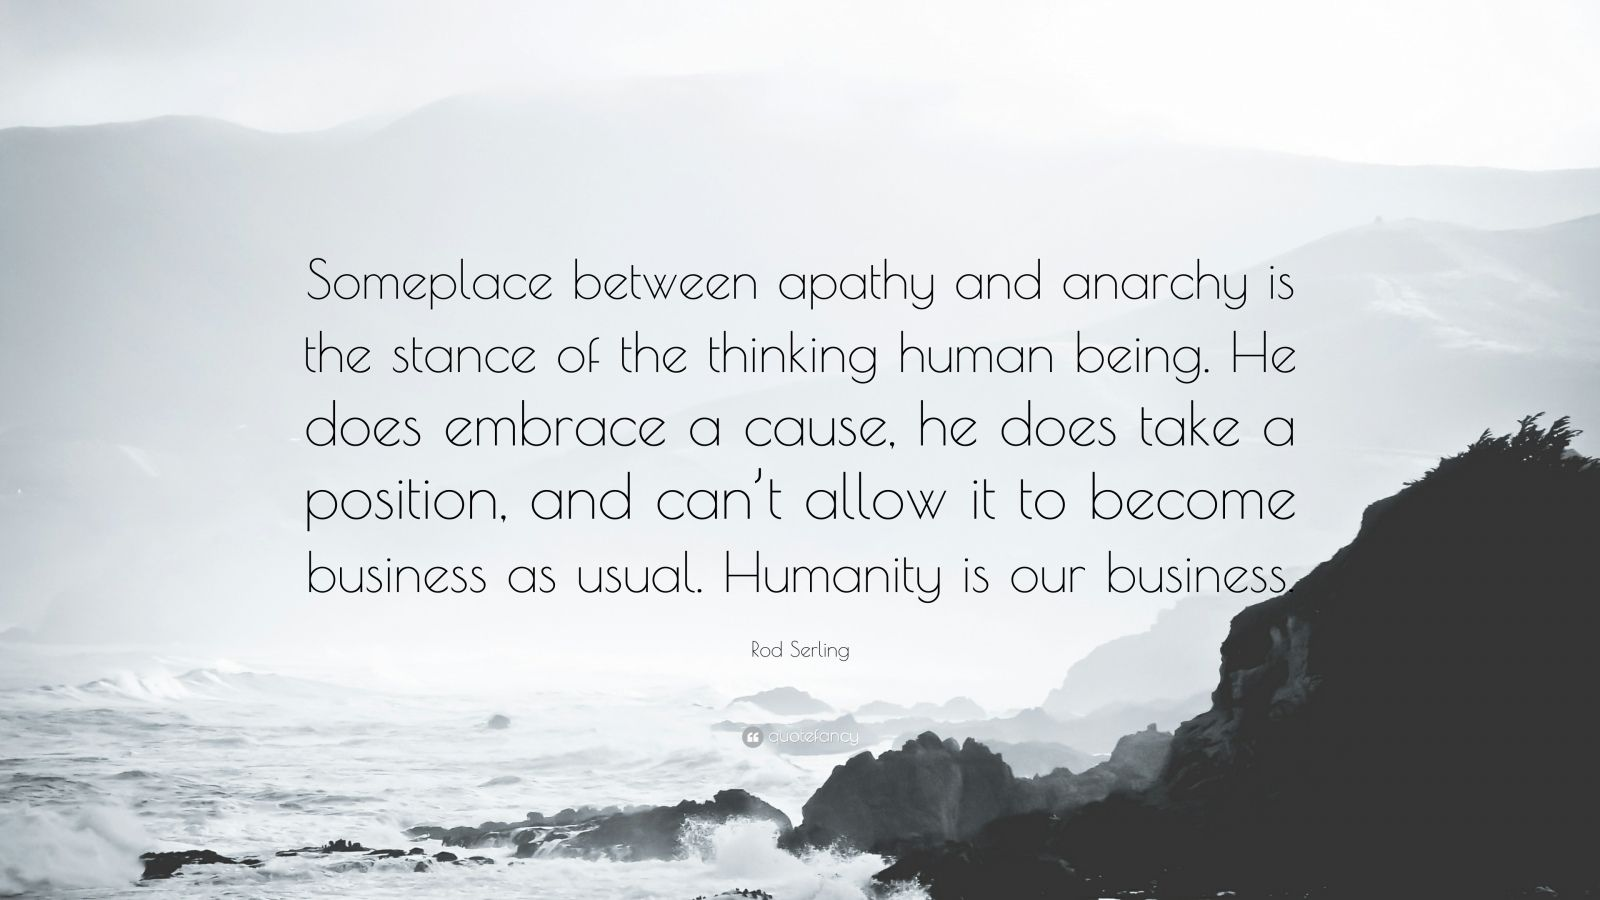 """Rod Serling Quote: """"Someplace between apathy and anarchy is the stance of the thinking human being. He does embrace a cause, he does take a position, and can't allow it to become business as usual. Humanity is our business."""""""